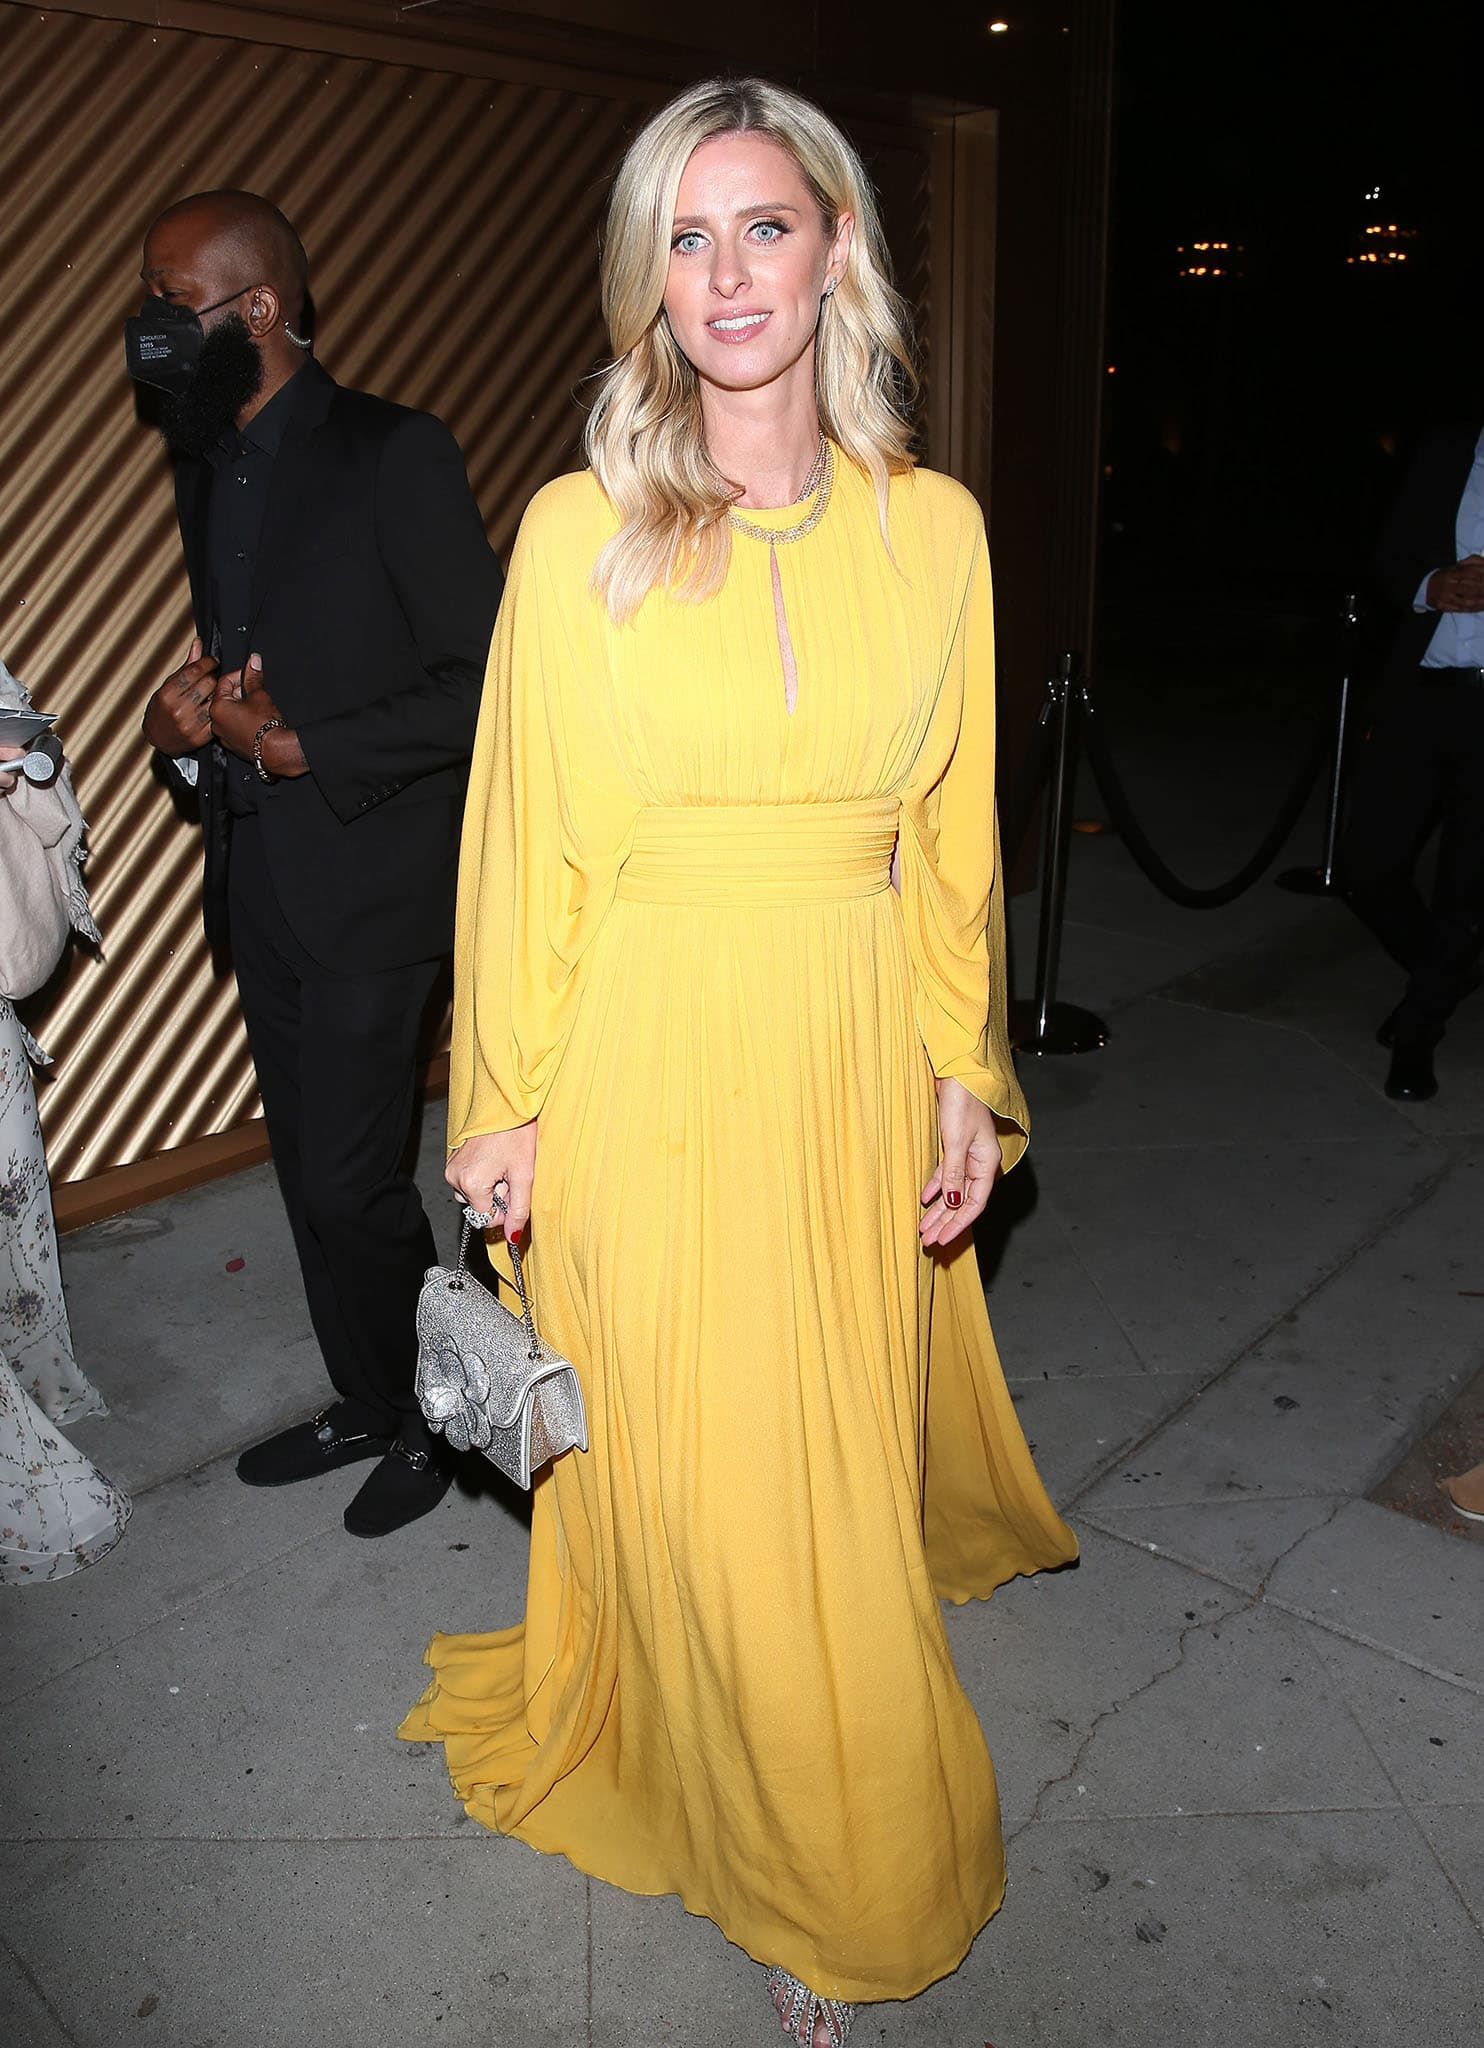 Nicky Hilton dazzles in a yellow Elie Saab Resort 2020 floor-sweeping gown with dramatic long sleeves